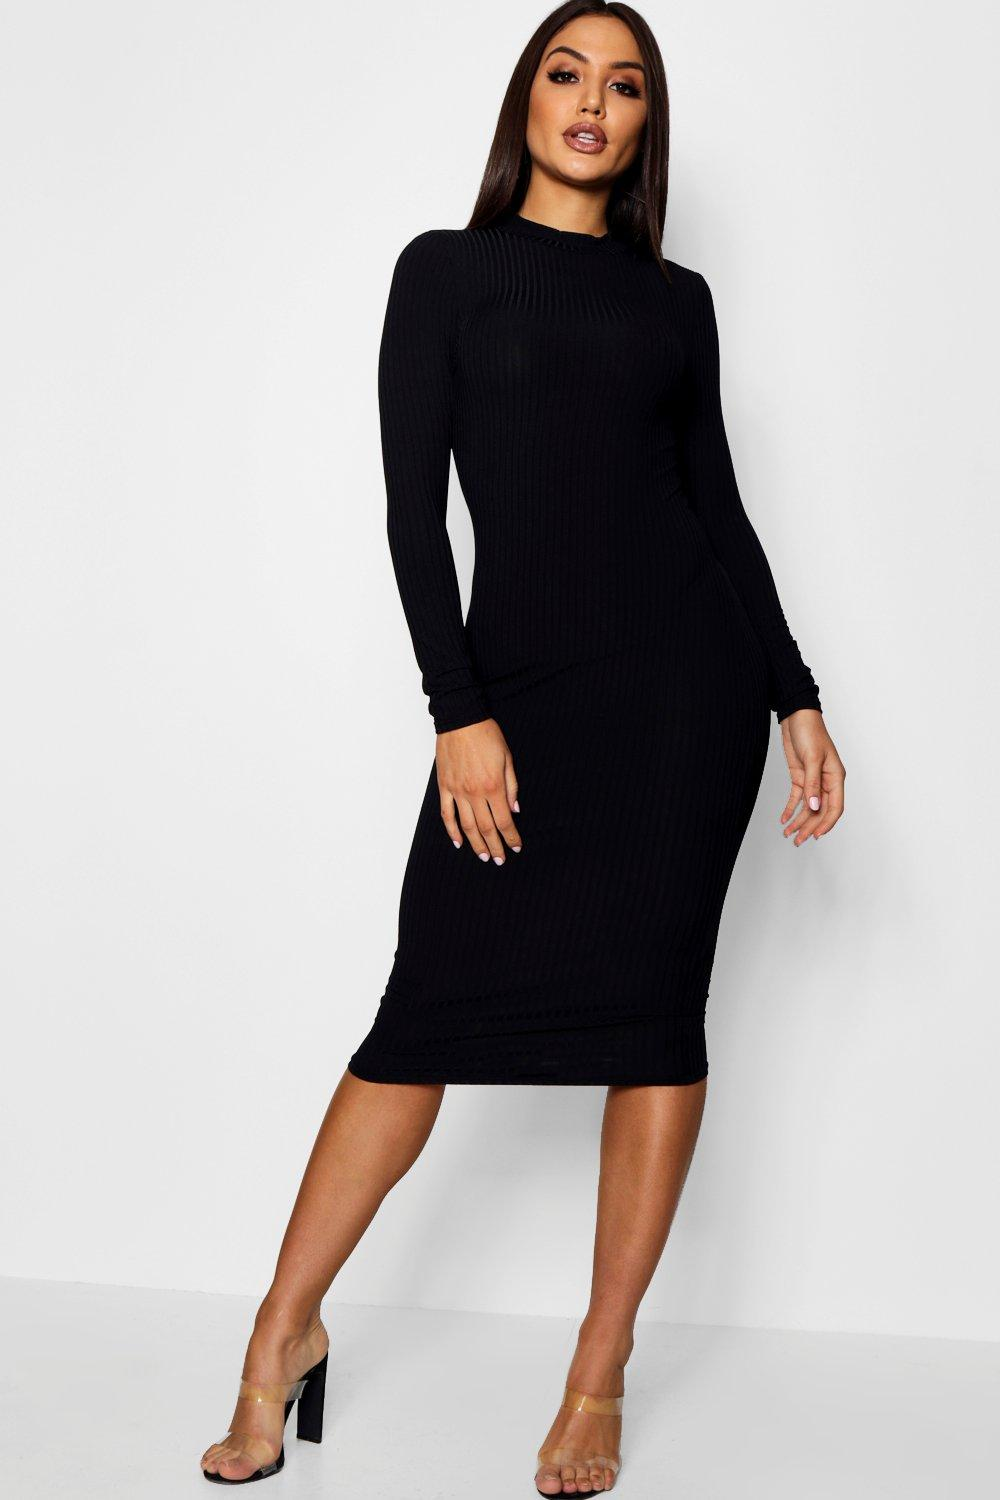 eee03ae31fbc ... Long Sleeved Midi Dress. Hover to zoom